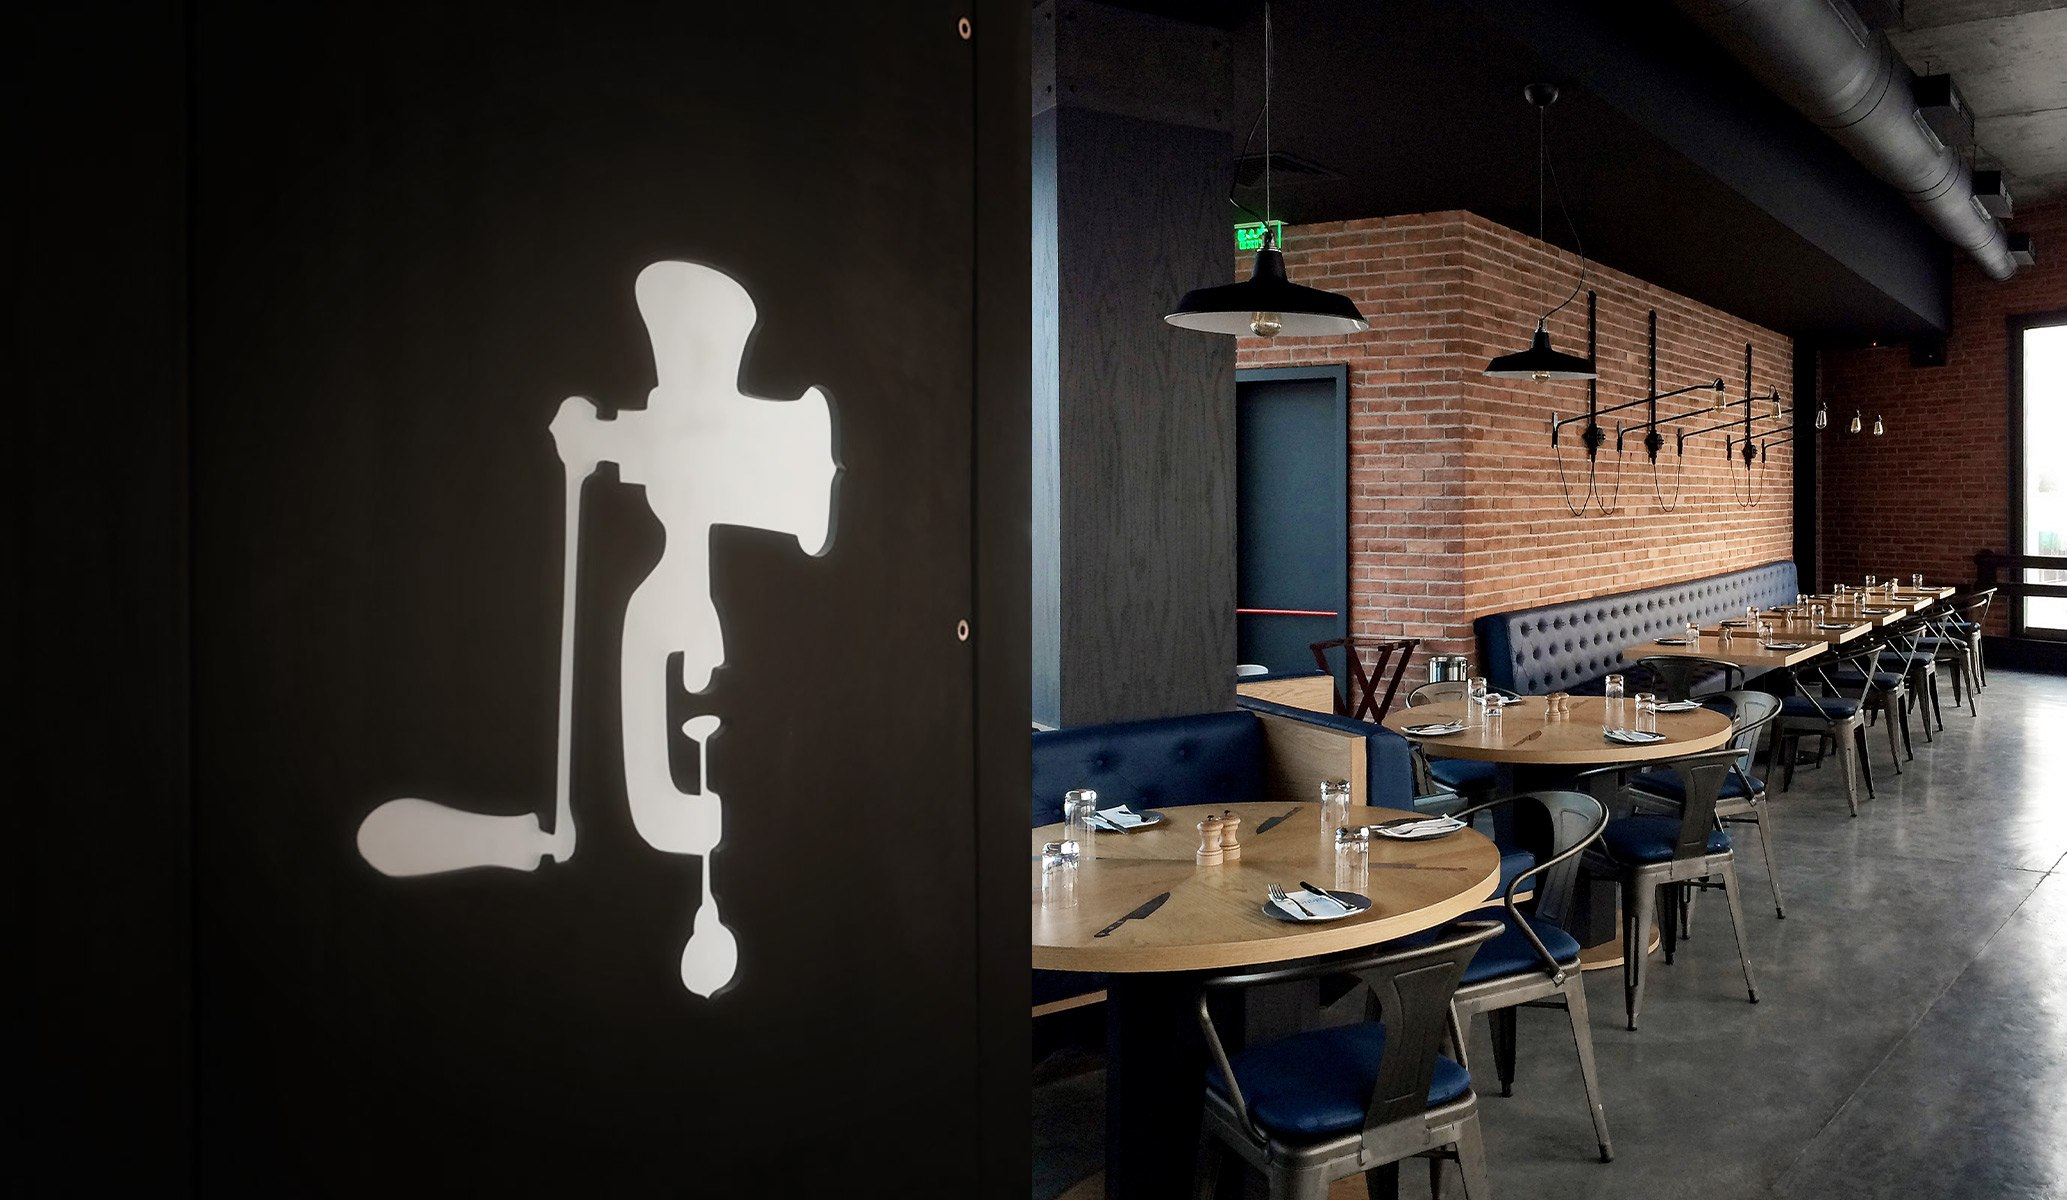 An industrial restaurant and bar design by Reform Design, Cyprus.